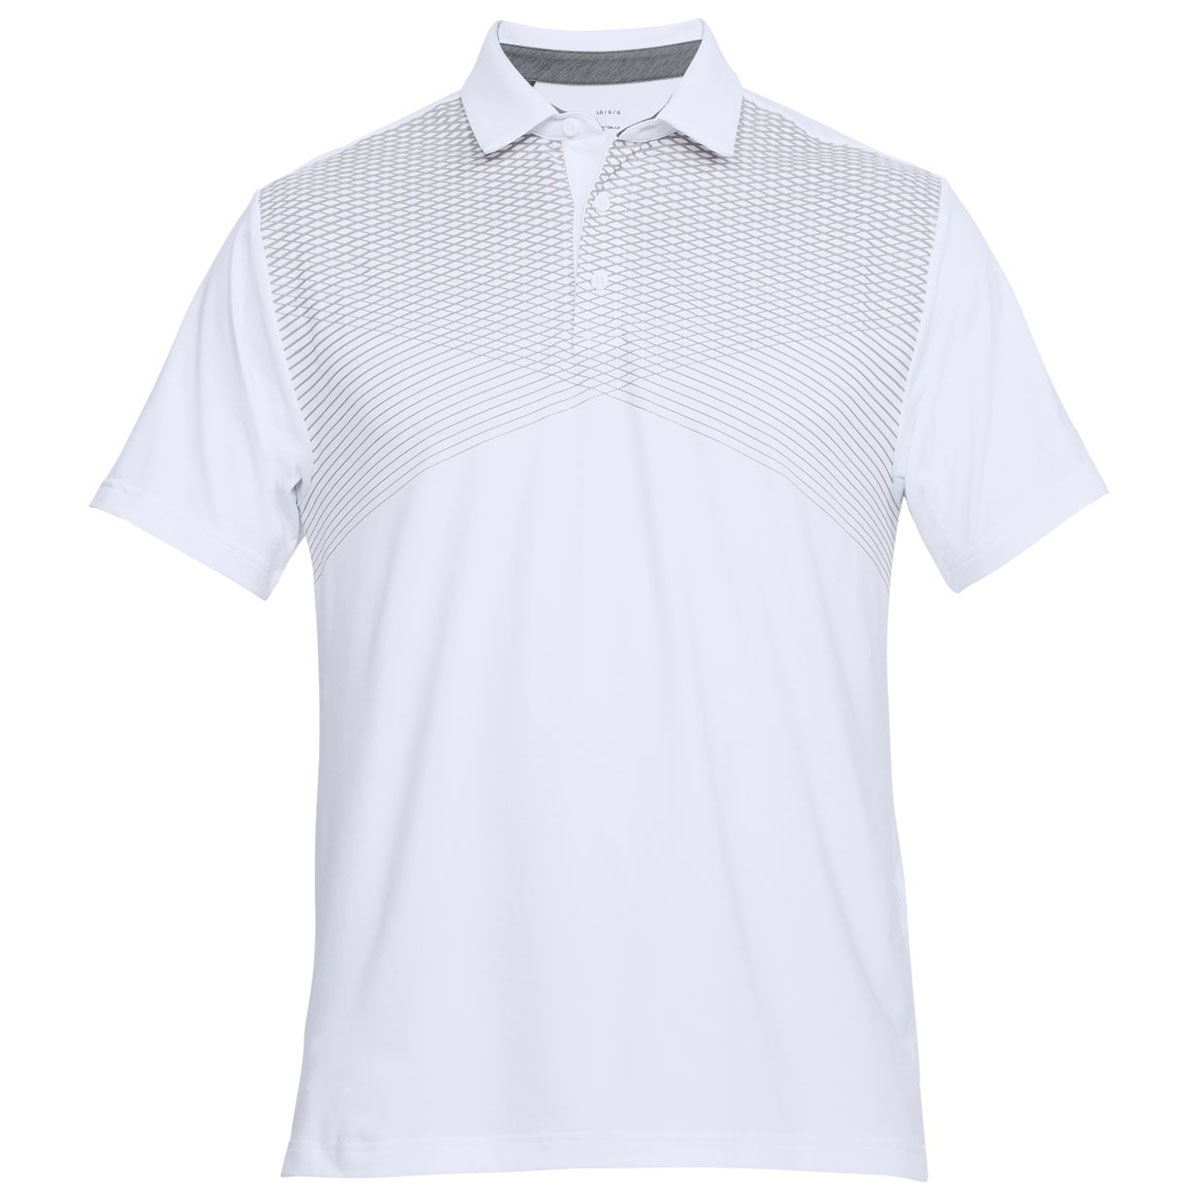 Under-Armour-Mens-UA-Playoff-Performance-Golf-Polo-Shirt-42-OFF-RRP thumbnail 54